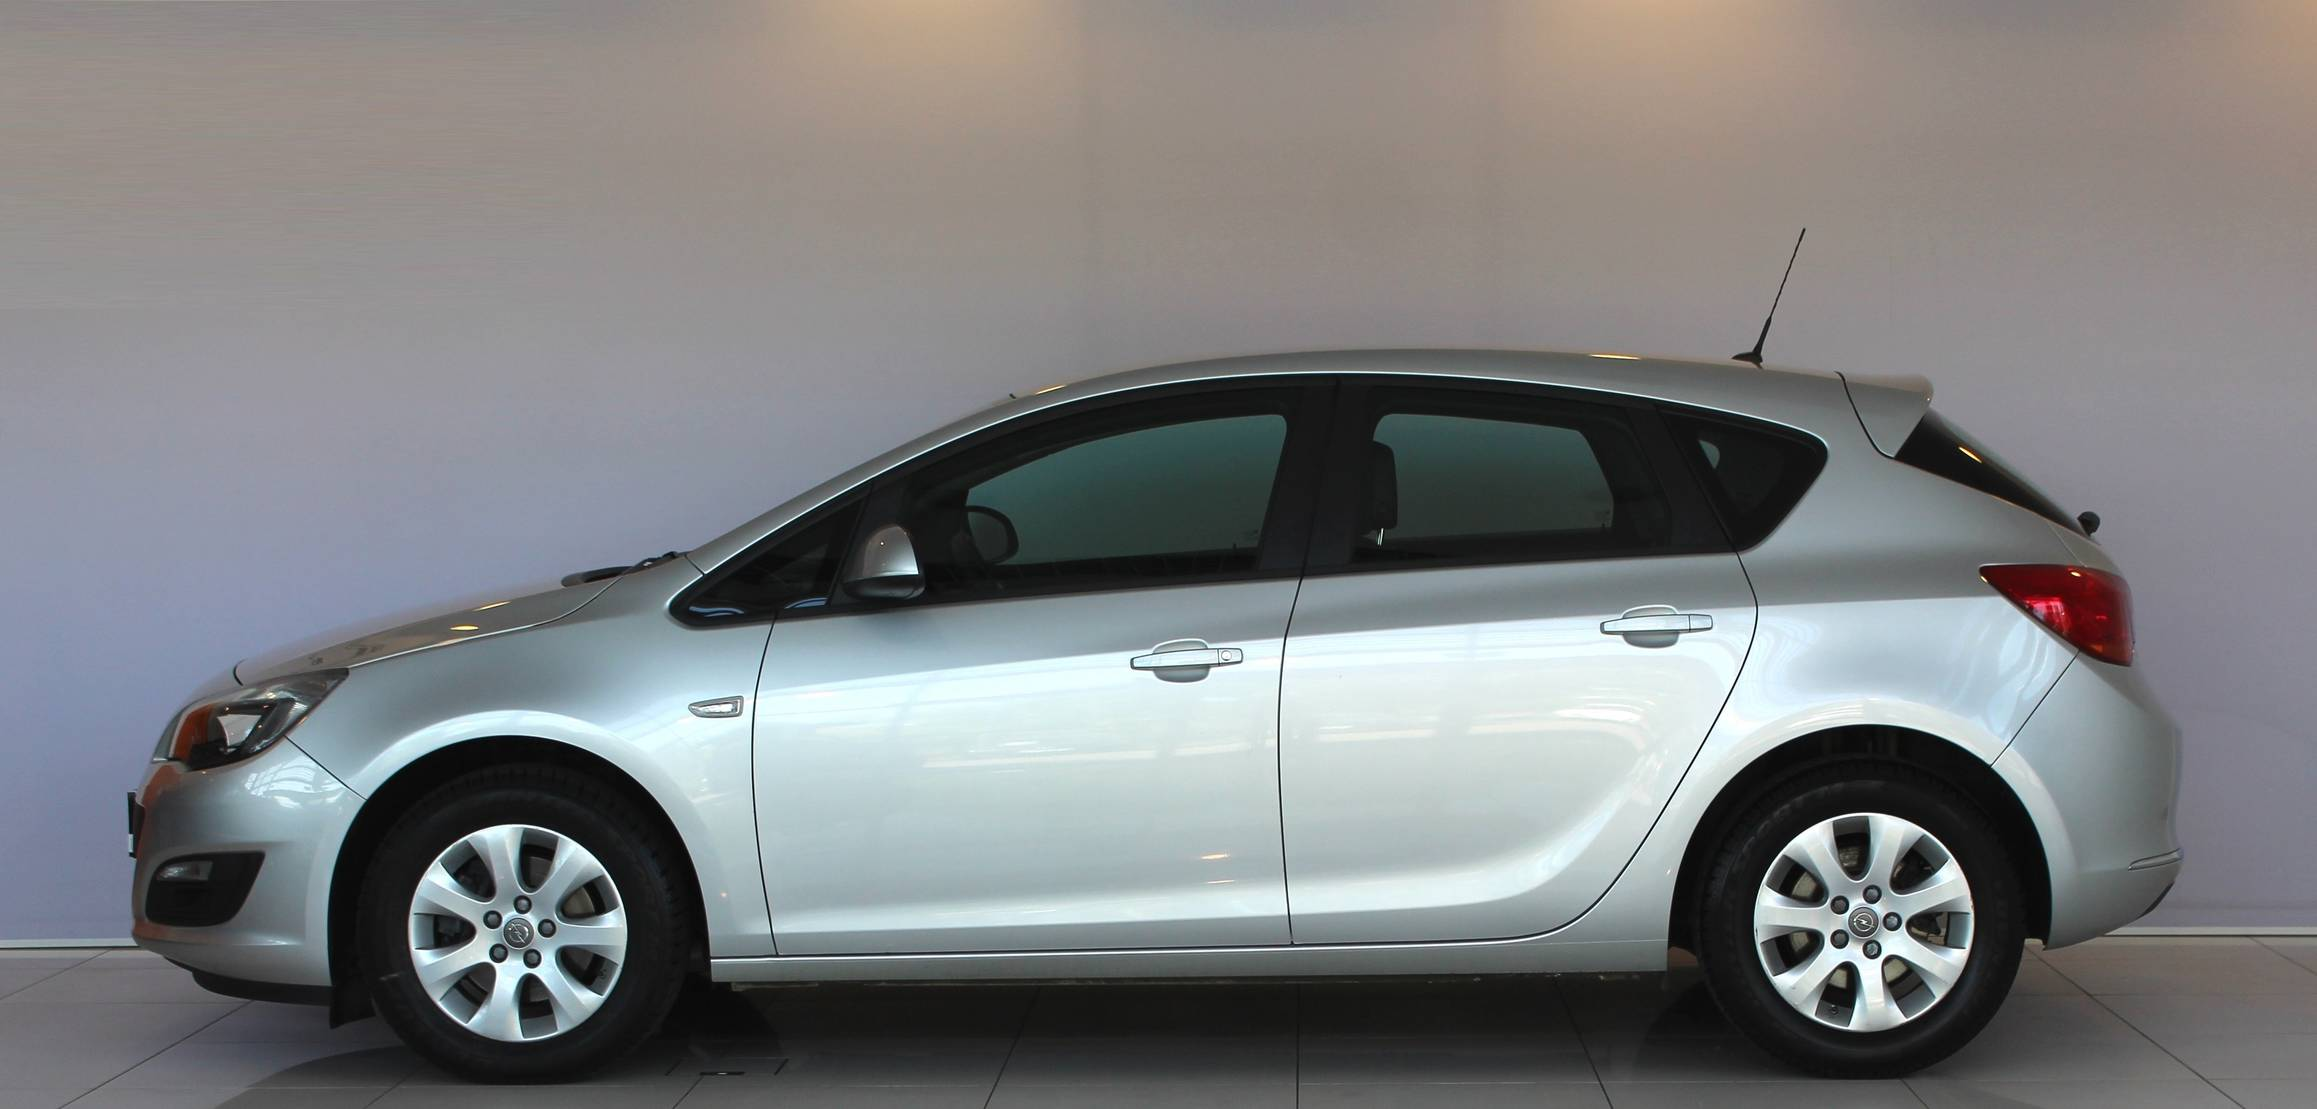 Opel Astra 1.7 CDTI DPF, Edition detail2